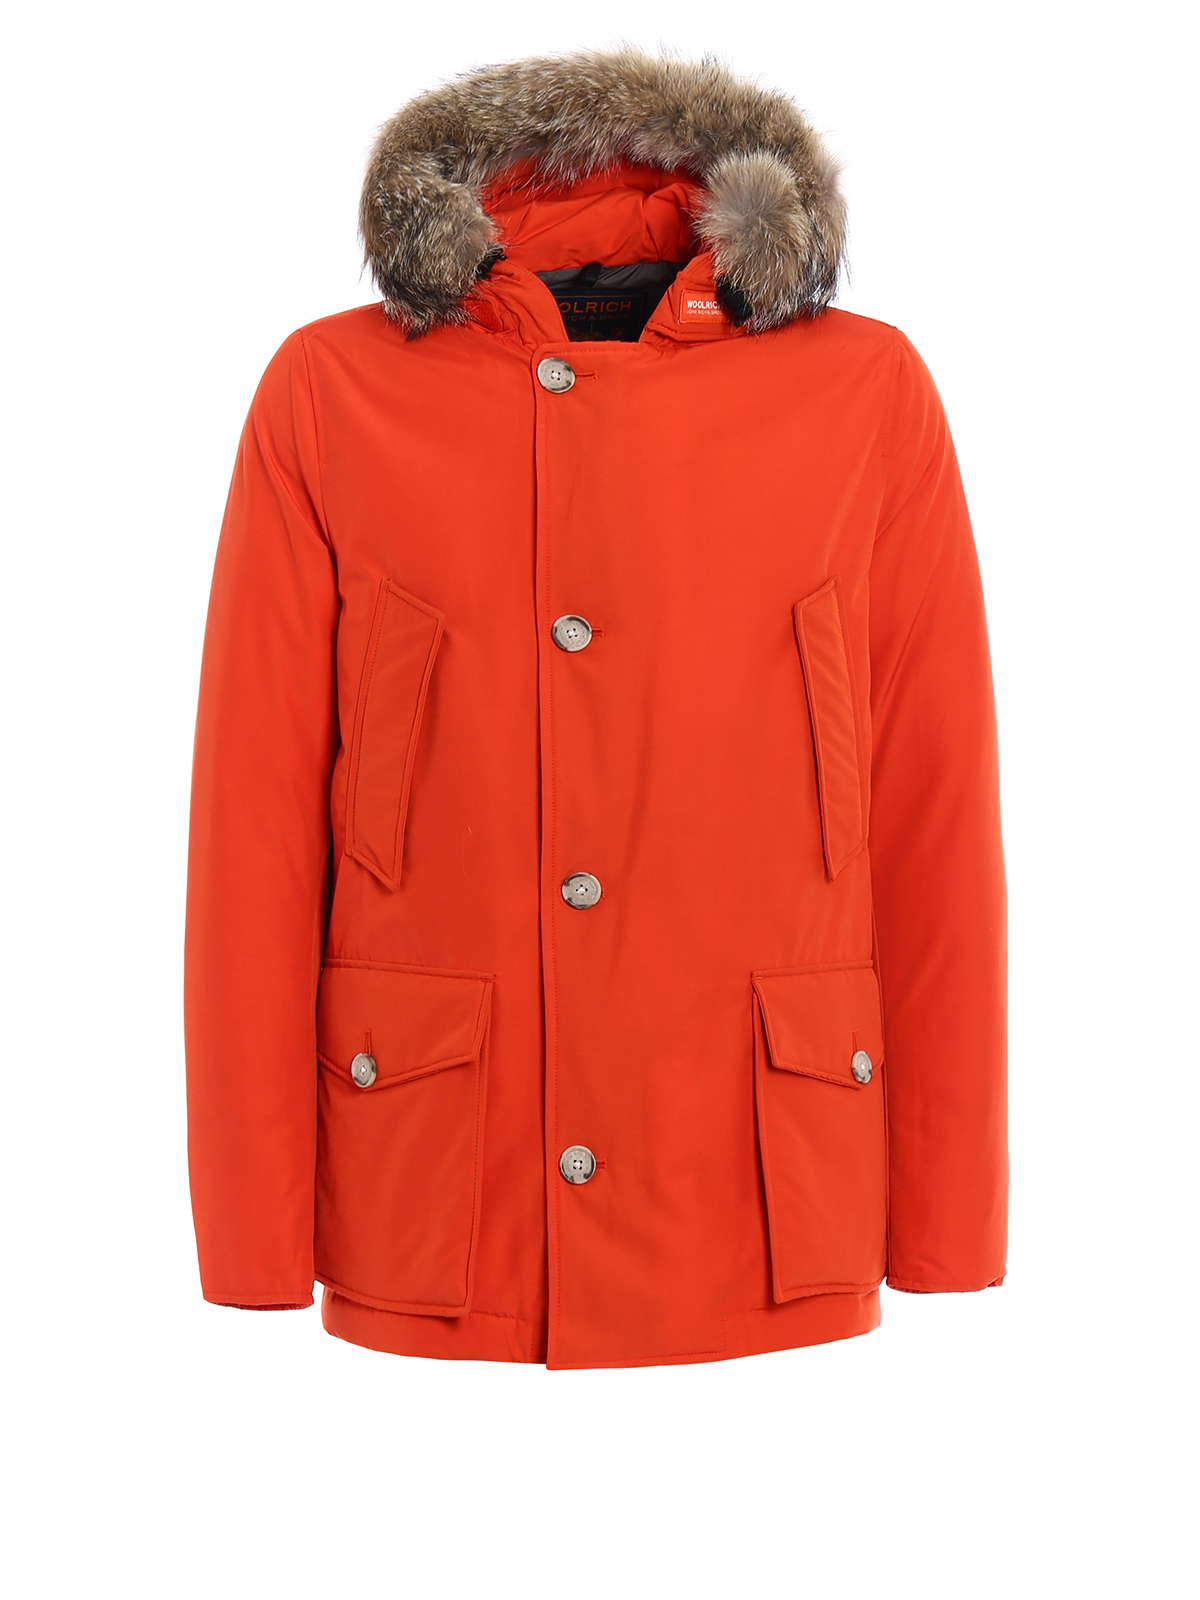 woolrich arctic anorak padded orange parka parkas wocps2586cn03tro. Black Bedroom Furniture Sets. Home Design Ideas